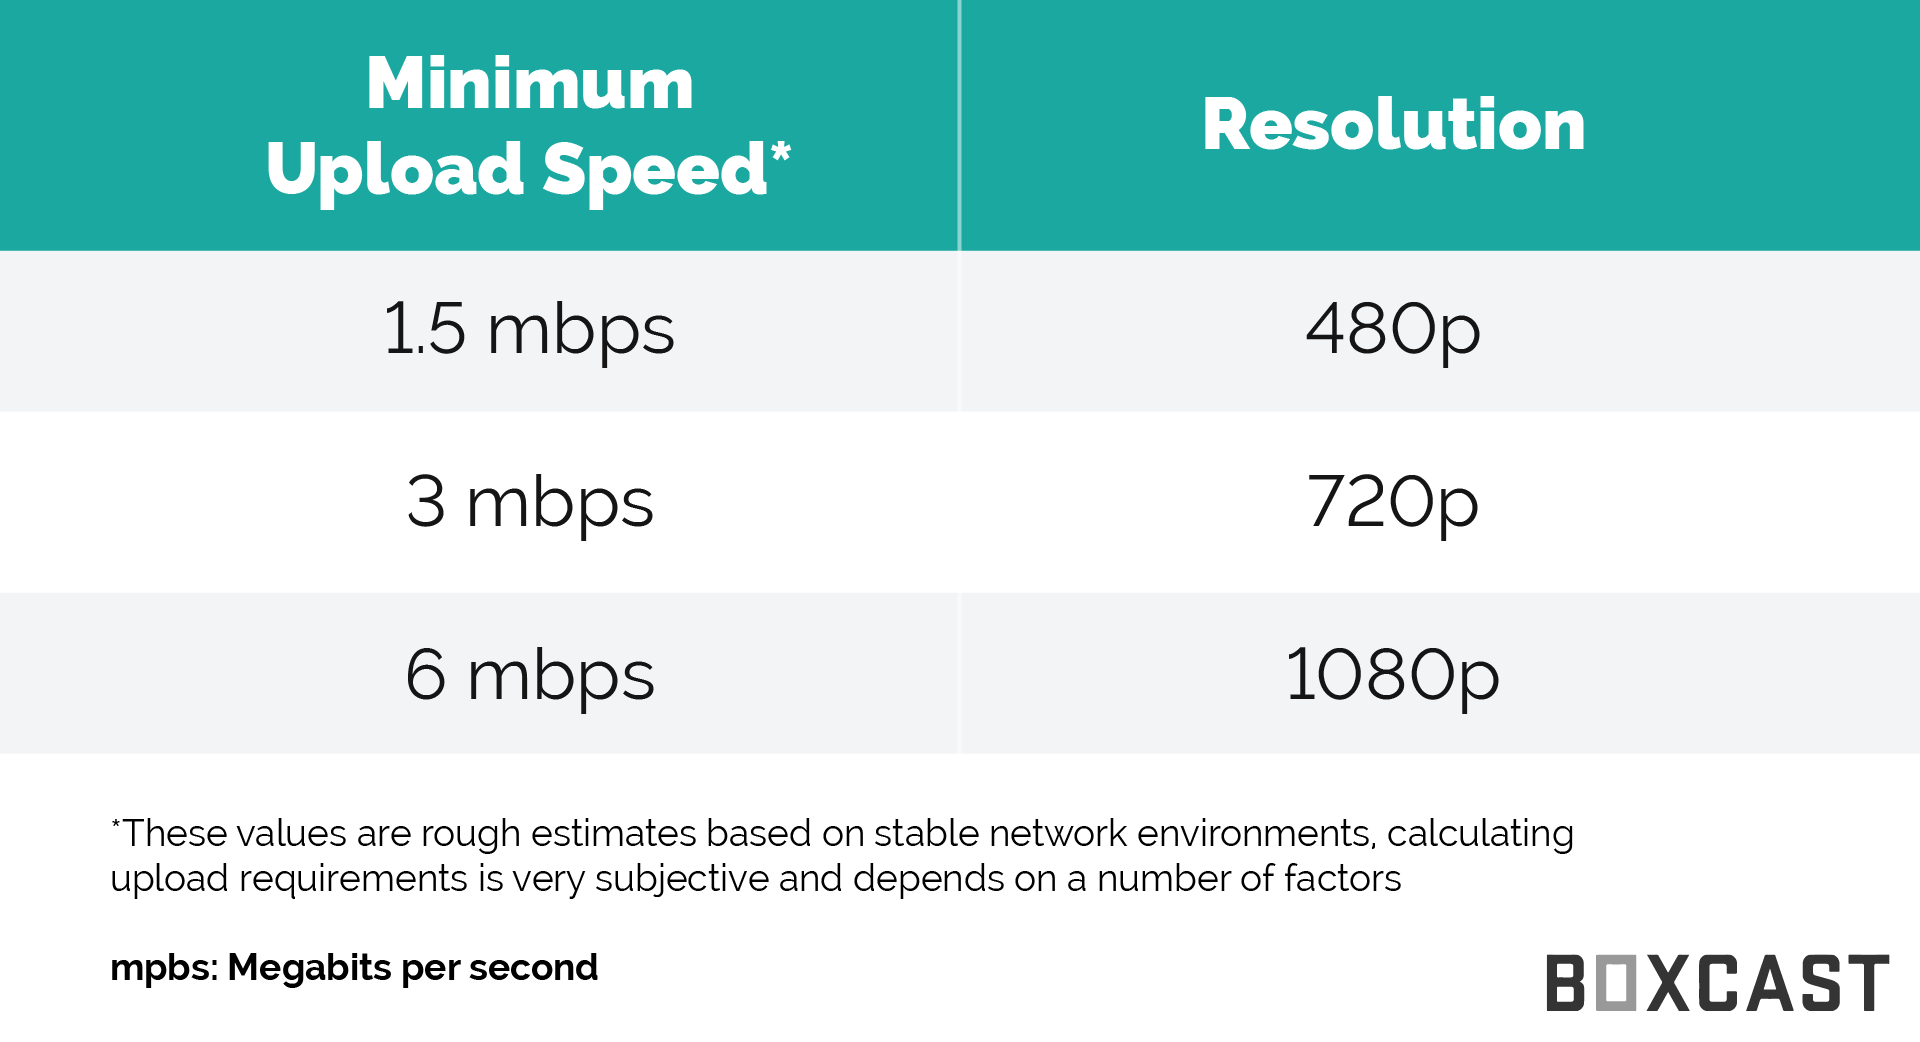 H.264 minimum upload speed and resolution